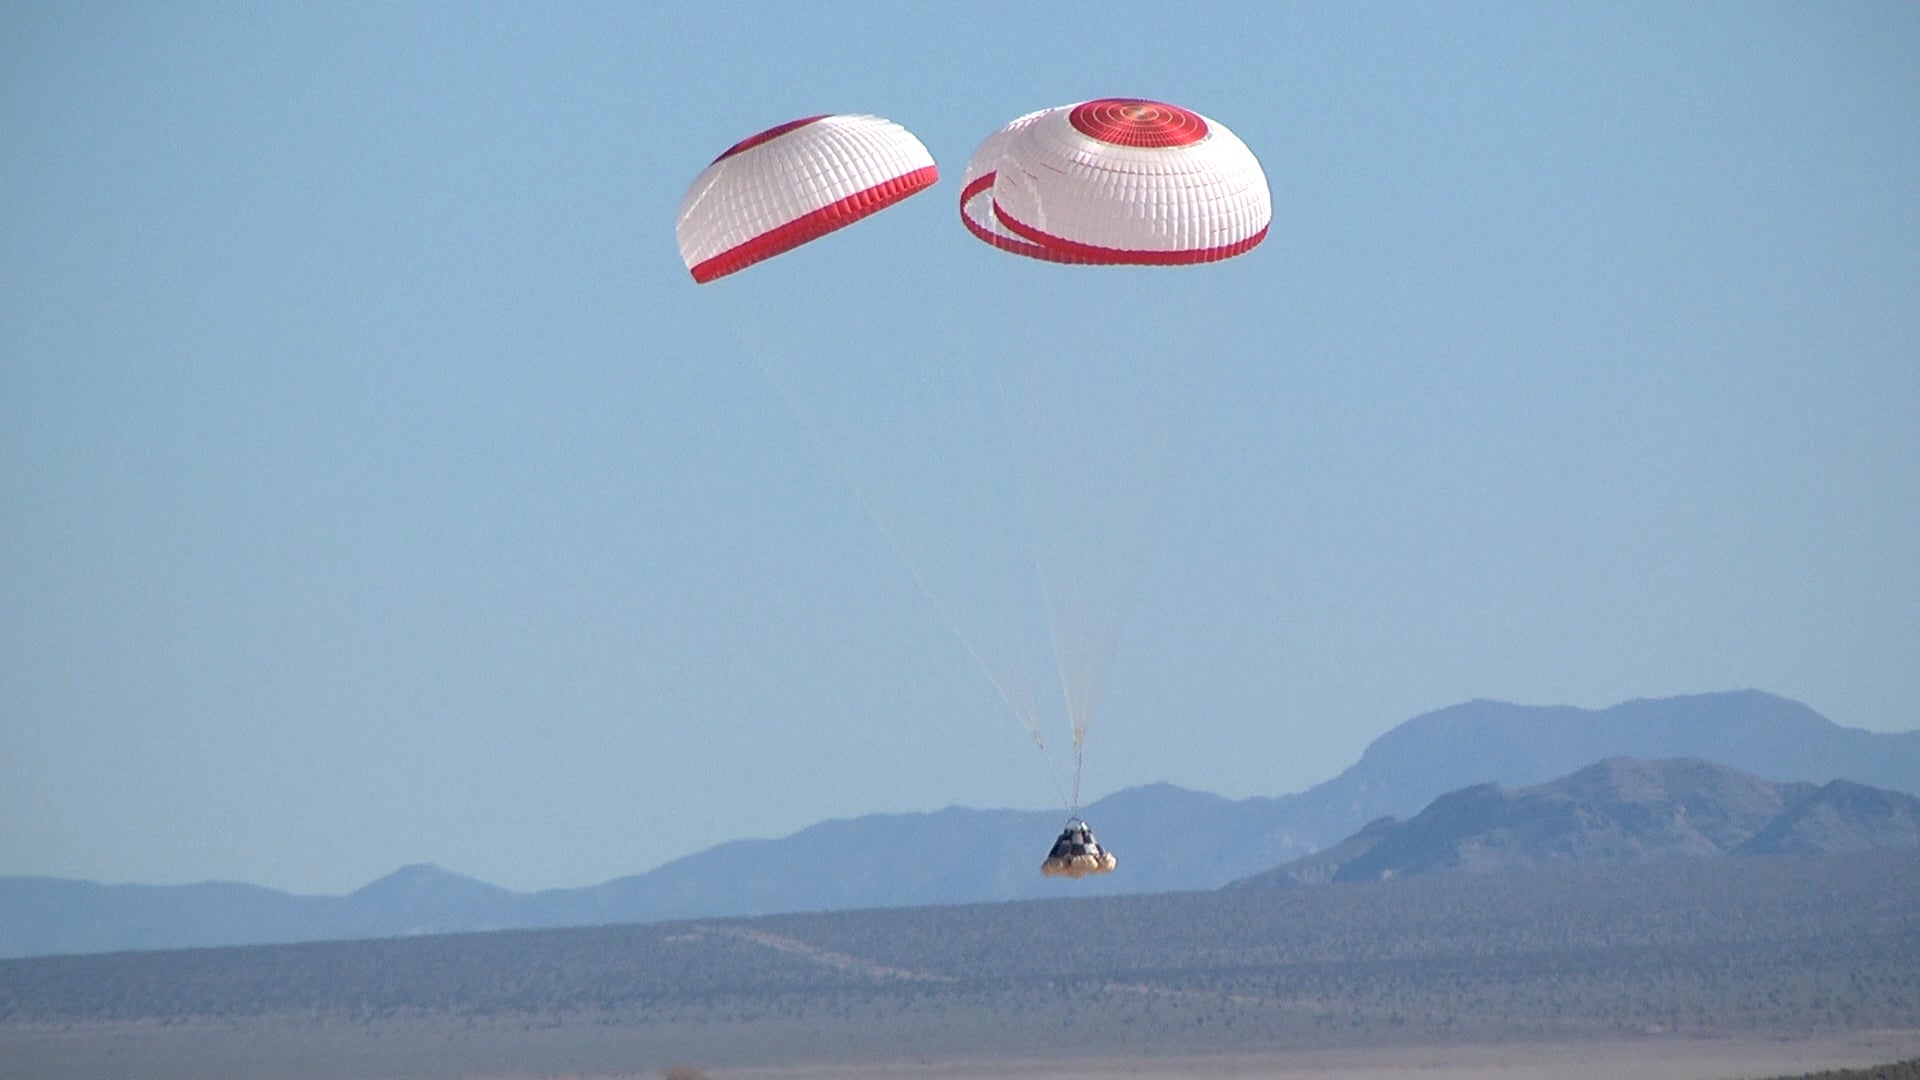 Boeing's Space Capsule Undergoes First Drop Test